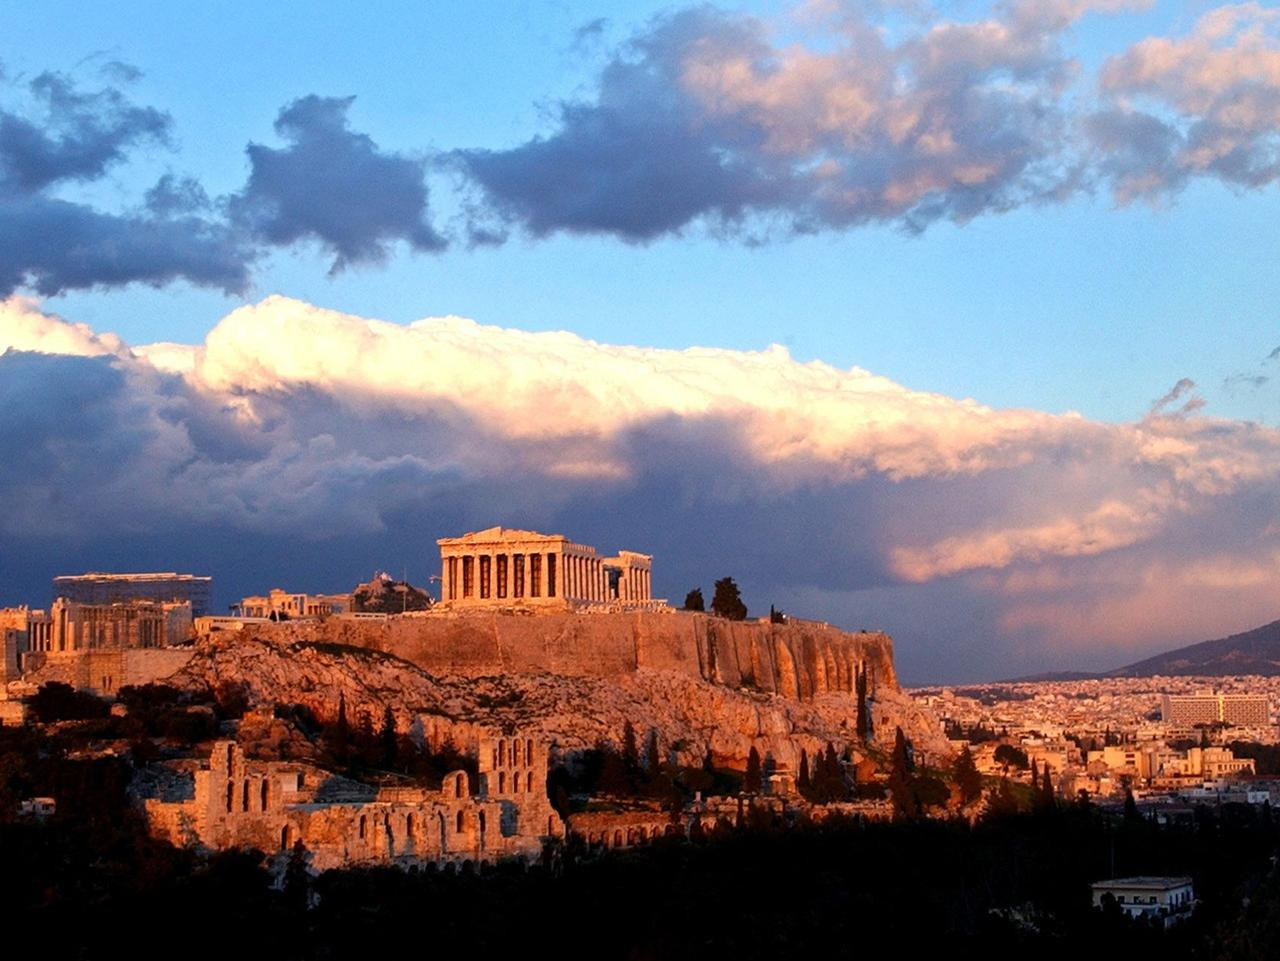 Sunlight catches clouds behind the ancient Acropolis in Athens, Feb 03, 2004. (AP PicPetros/Giannakouris) history o/seas greece scenic travel tourism buildings exterior